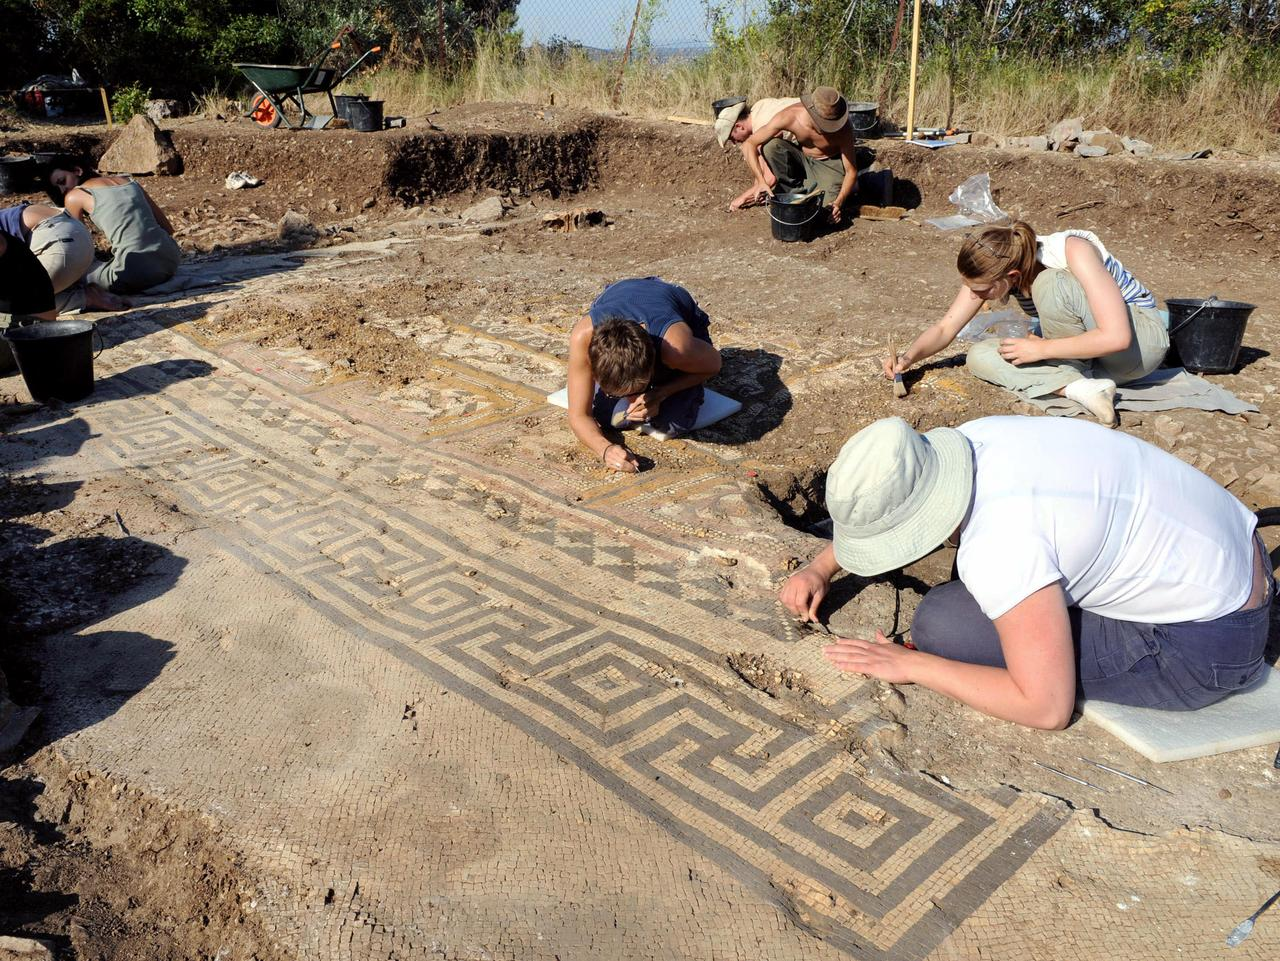 Archaeology students work on a six metre squared mosaic dating from 50 BC on July 30, 2008 near Ales. This mosaic, exceptional due to its size and multicoloured motifs was discovered during digs on a hill overlooking the town. AFP PHOTO PASCAL GUYOT